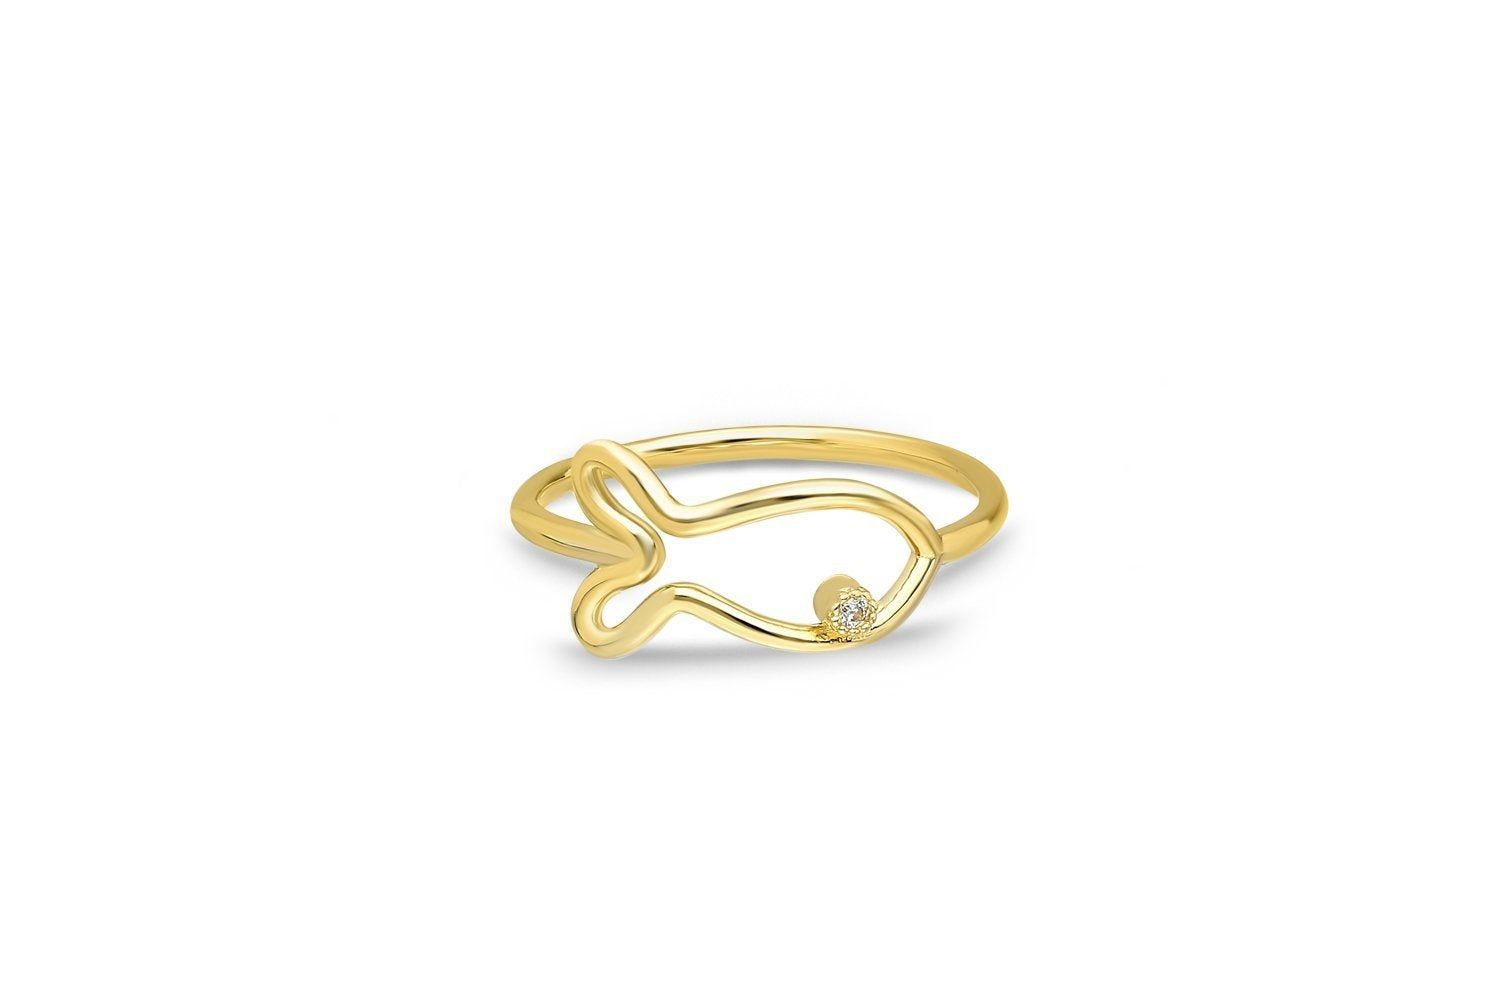 """""""Fish Ring for Women, Gold Fish Ring, Petite Dainty Gold Ring, 14k Solid Gold Ring, Gifts For Mom by Elyssa Jewelry ✨ Features o Gold KT: 14K Solid Gold (18K also available - there may be additional cost) o Available Gold Color: Yellow Gold, Rose Gold, White Gold o All items will be shipped with a special ELYSSA Jewelry box. o All items go through quality control by our team before shipping Ready to Ship in 7-10 Business Days 🎁 Each order will be shipped out to you with an ELYSSA Gift Box - For"""